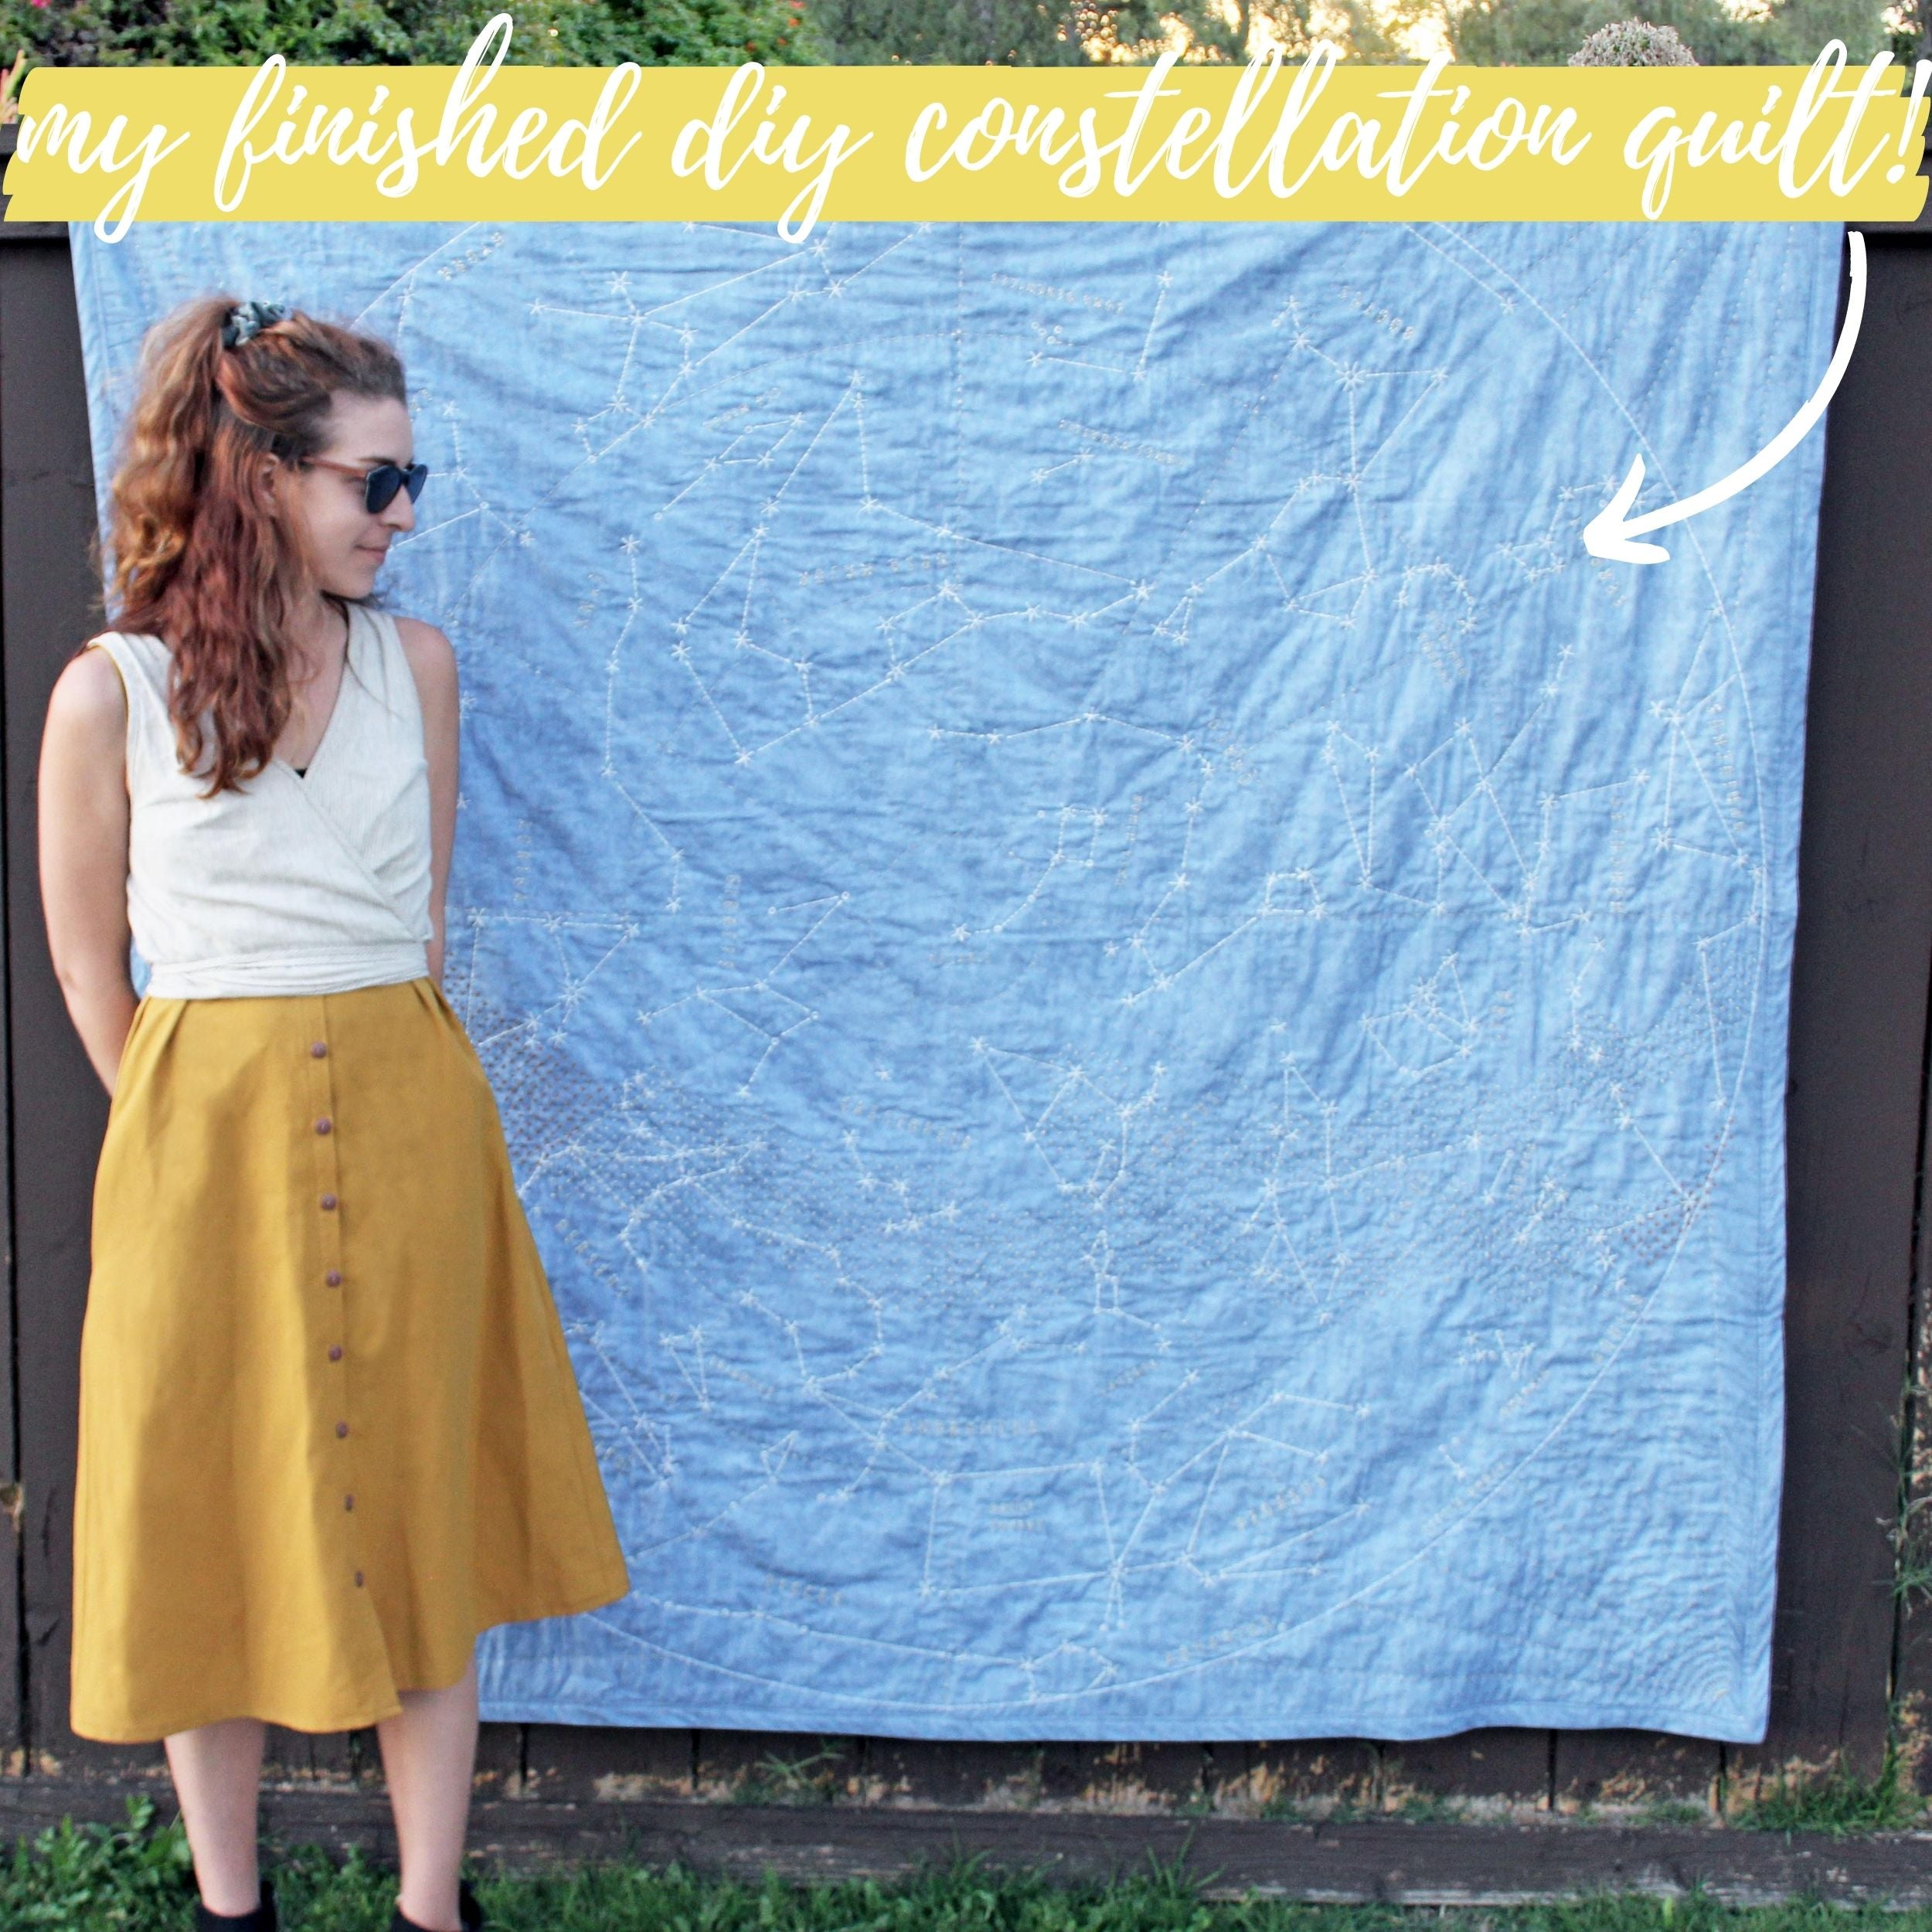 Favorite Sewing Projects: Finished DIY Constellation Quilt